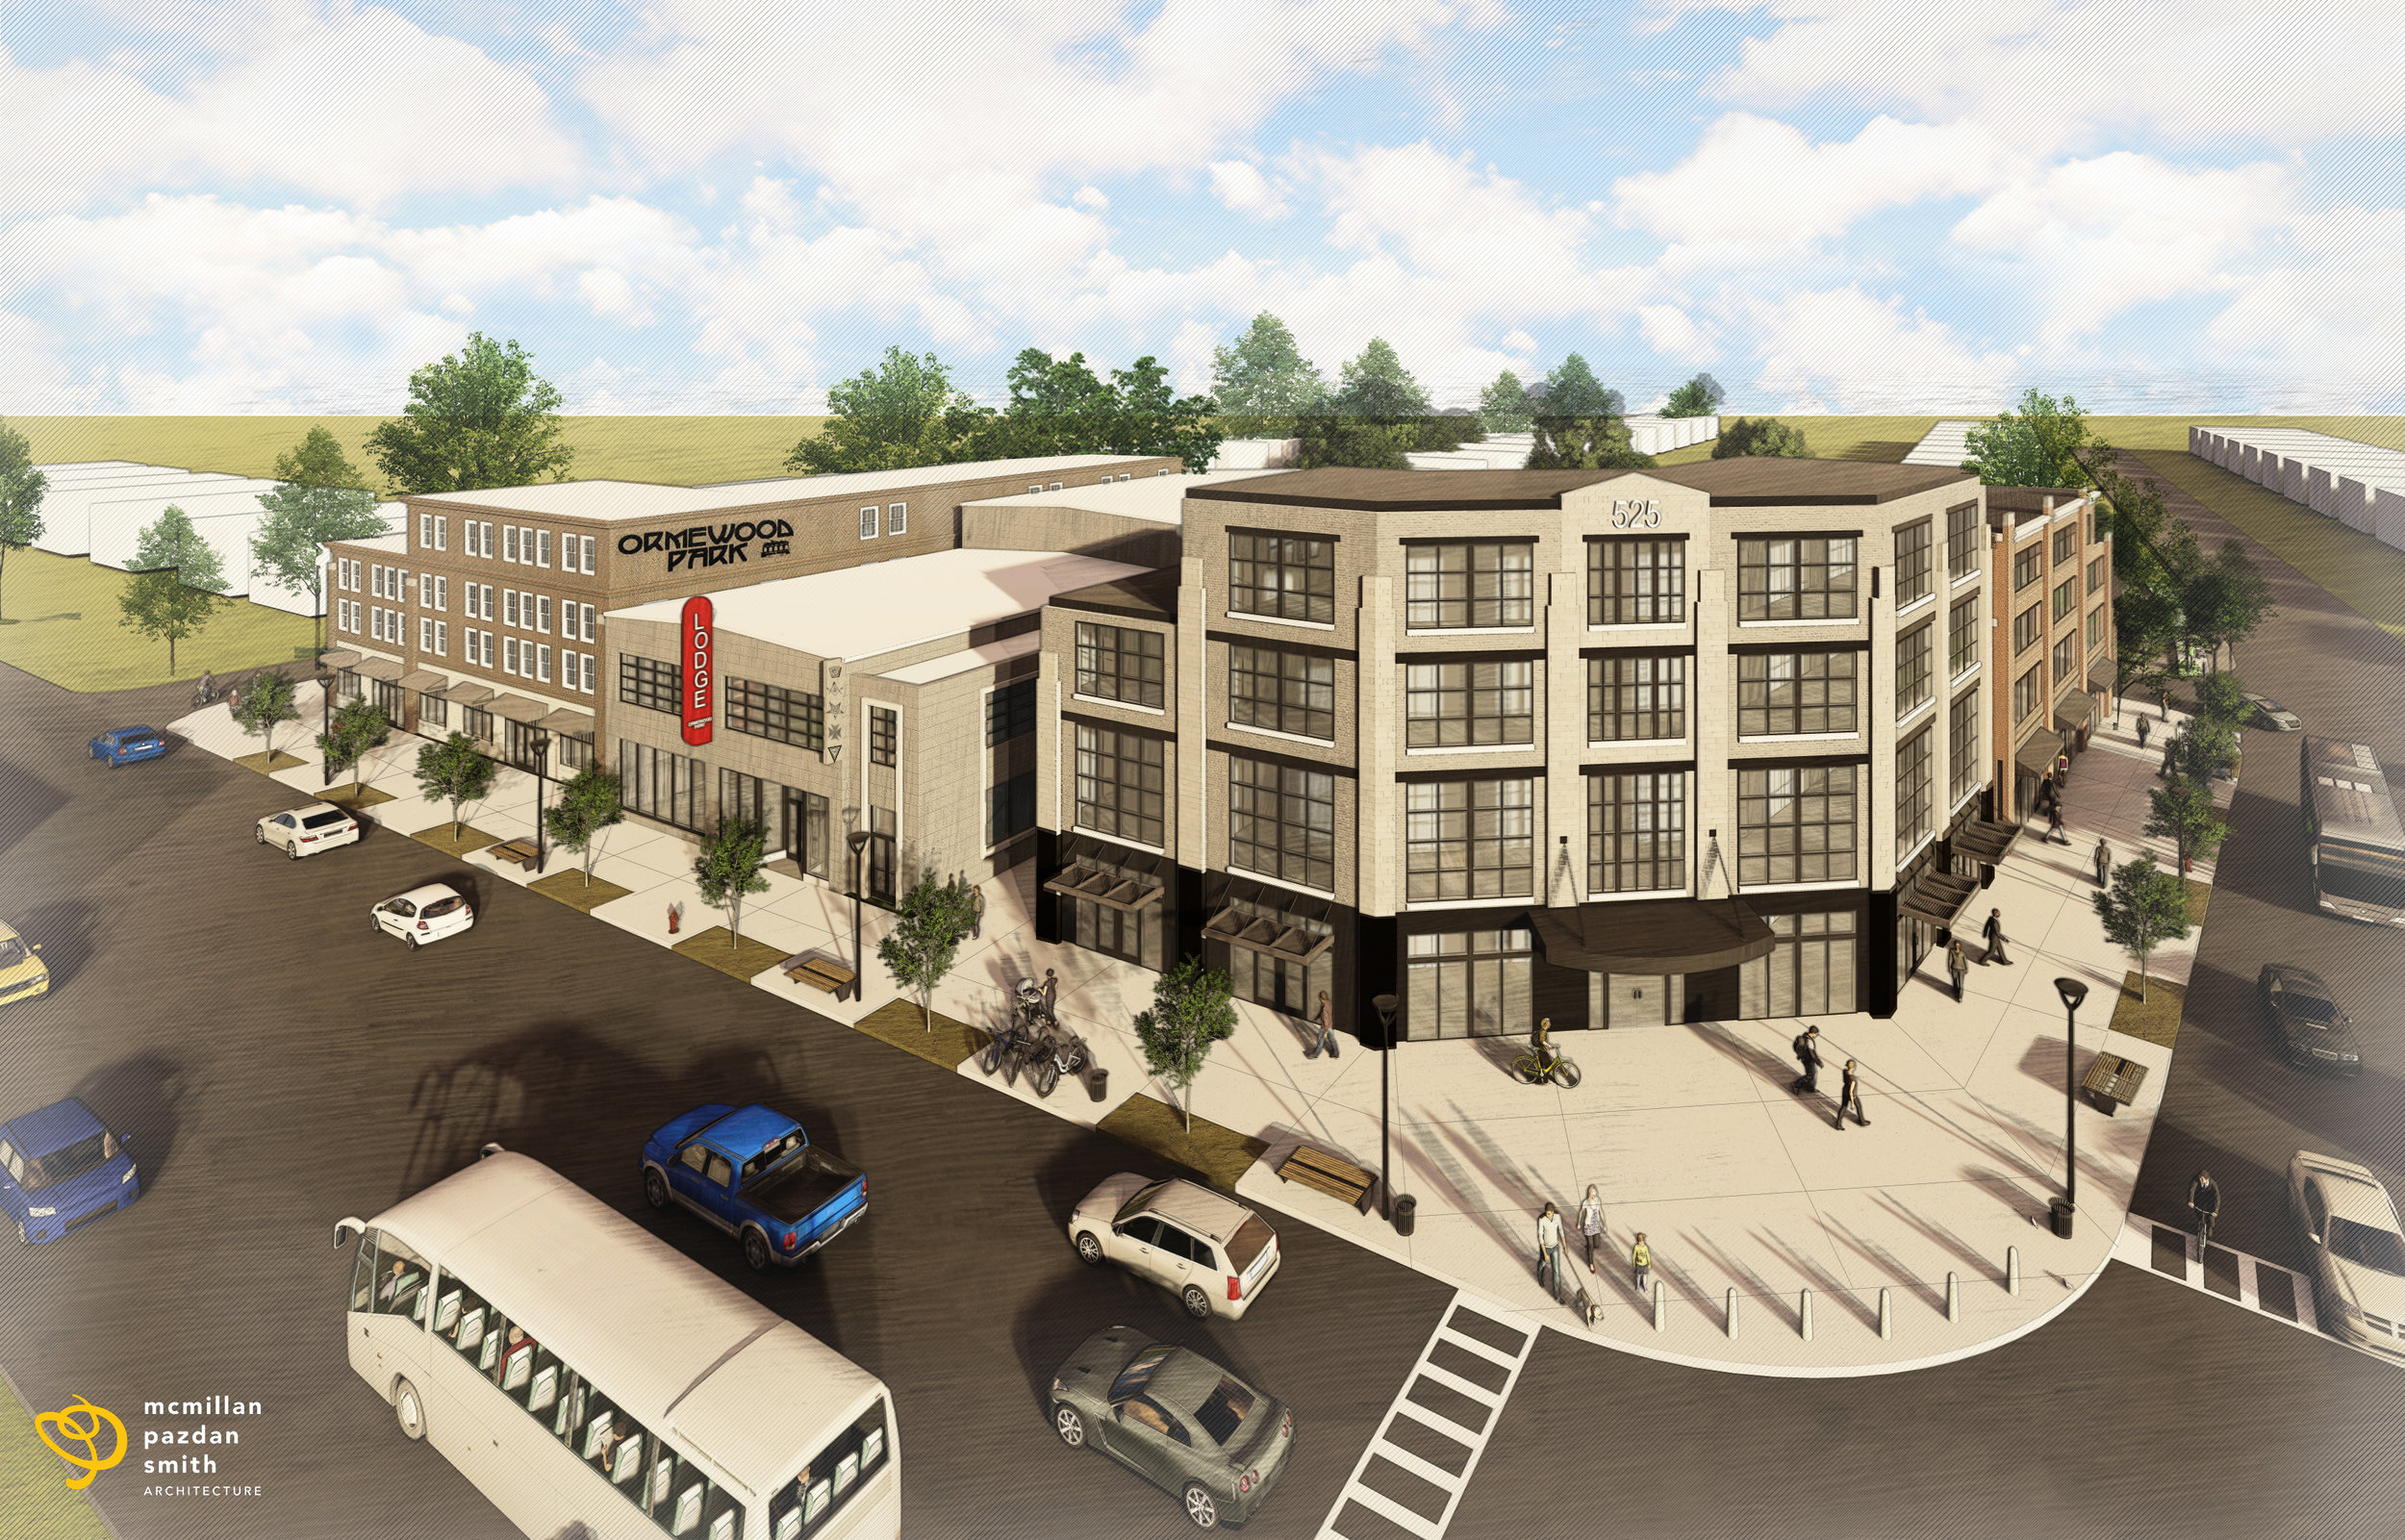 Conceptual rendering at the intersection of Moreland Ave and Glenwood Ave looking southwest.